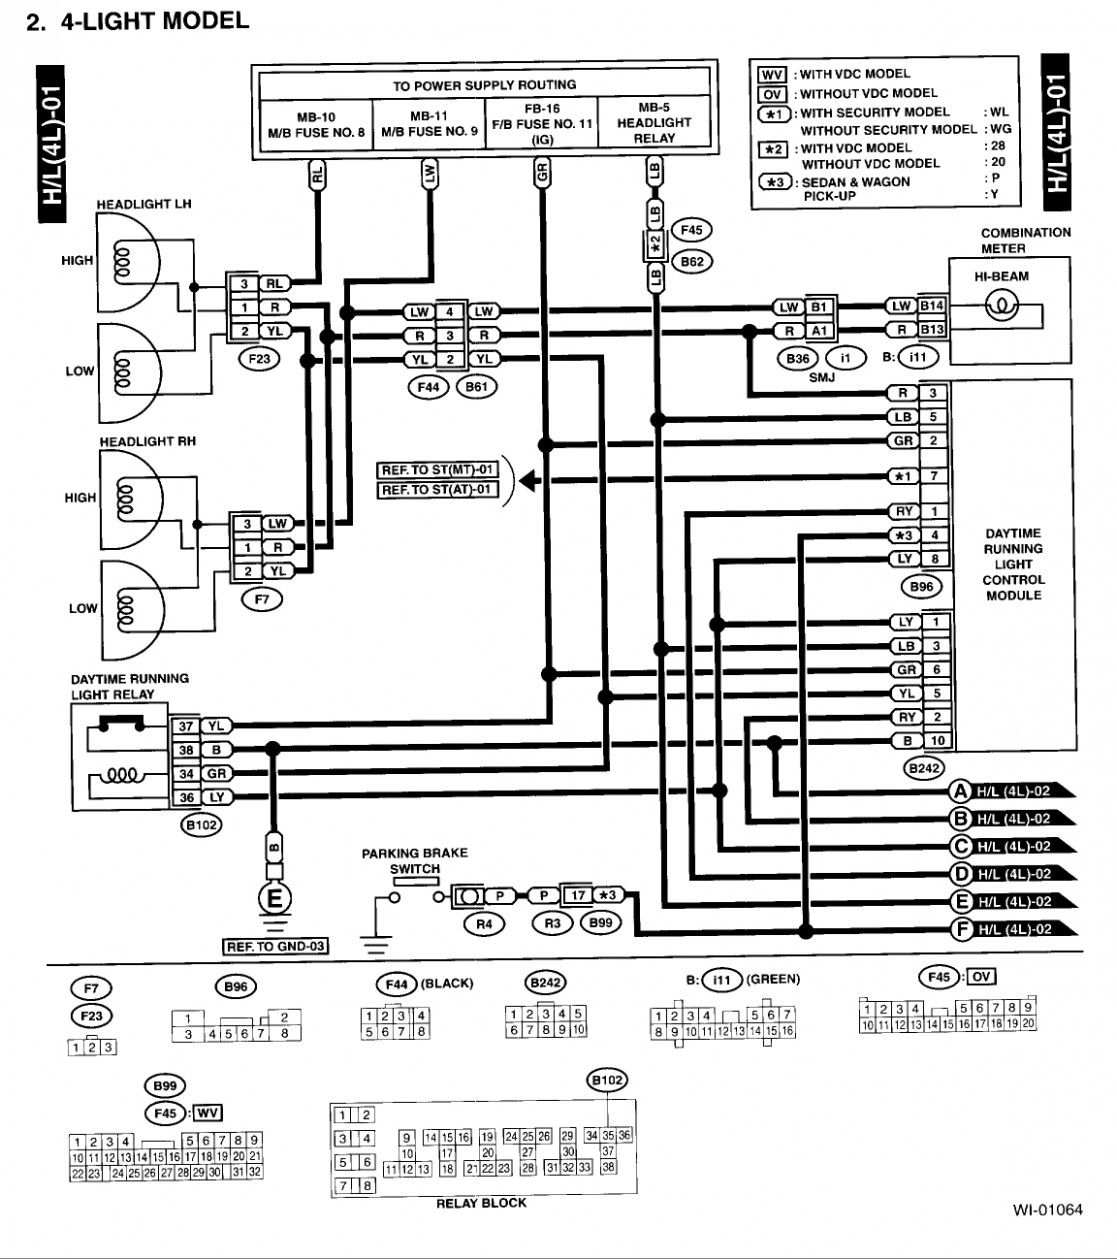 Schematic Peterbilt Wiring Diagram Free from i.pinimg.com